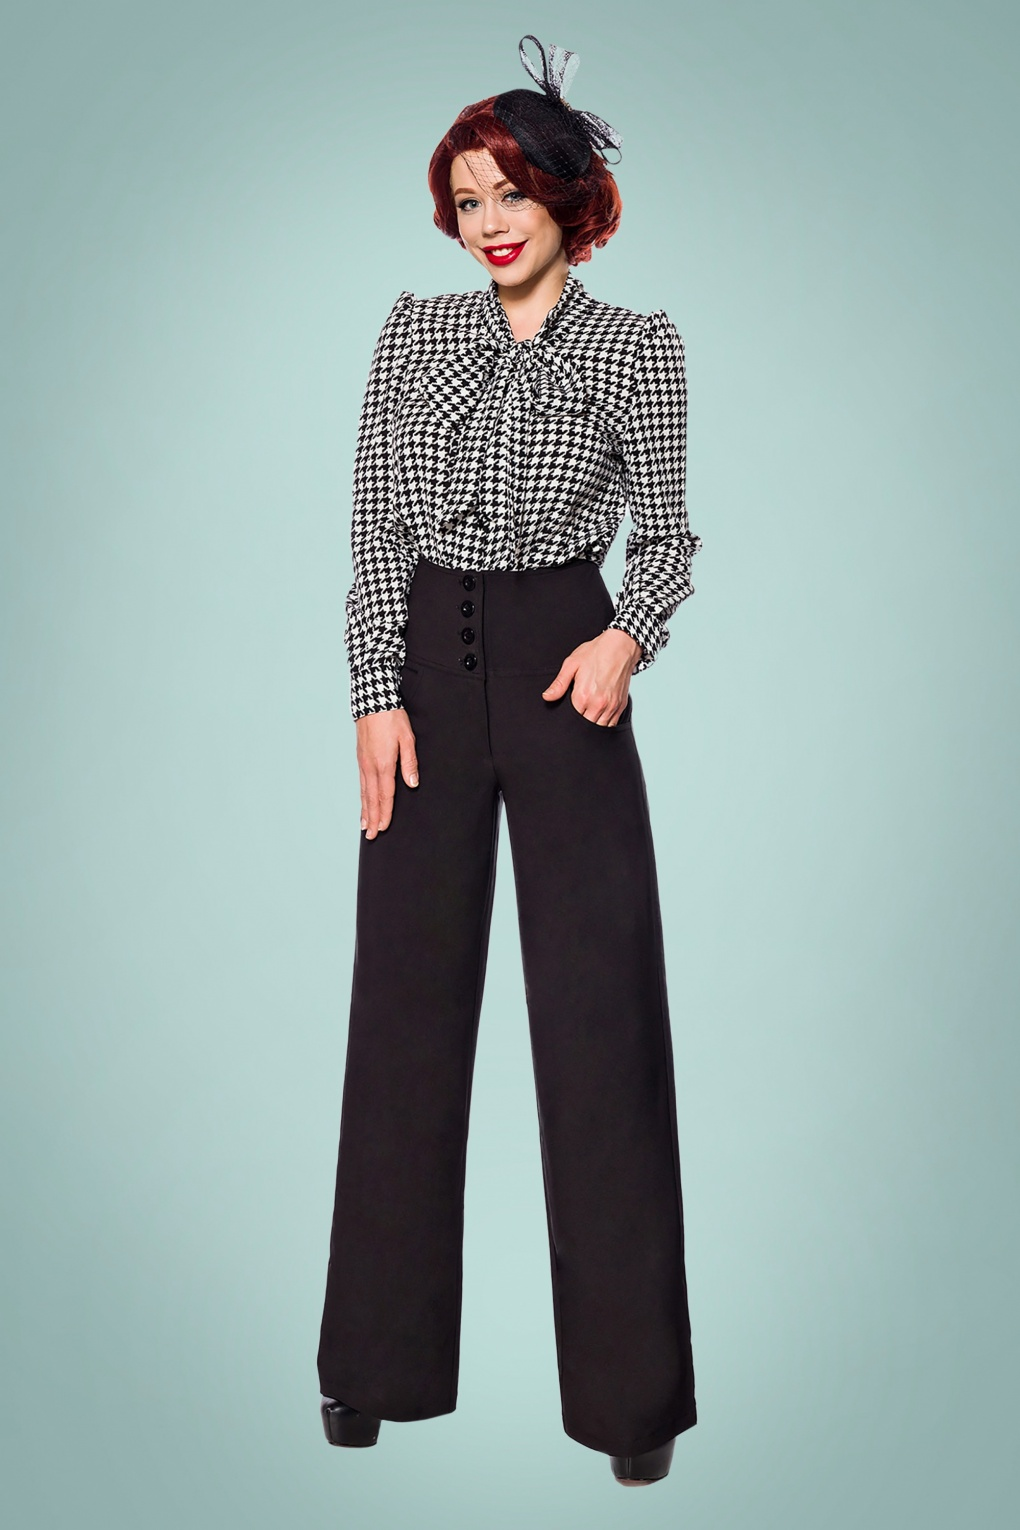 Vintage High Waisted Trousers, Sailor Pants, Jeans 40s Charline Trousers in Black £53.99 AT vintagedancer.com